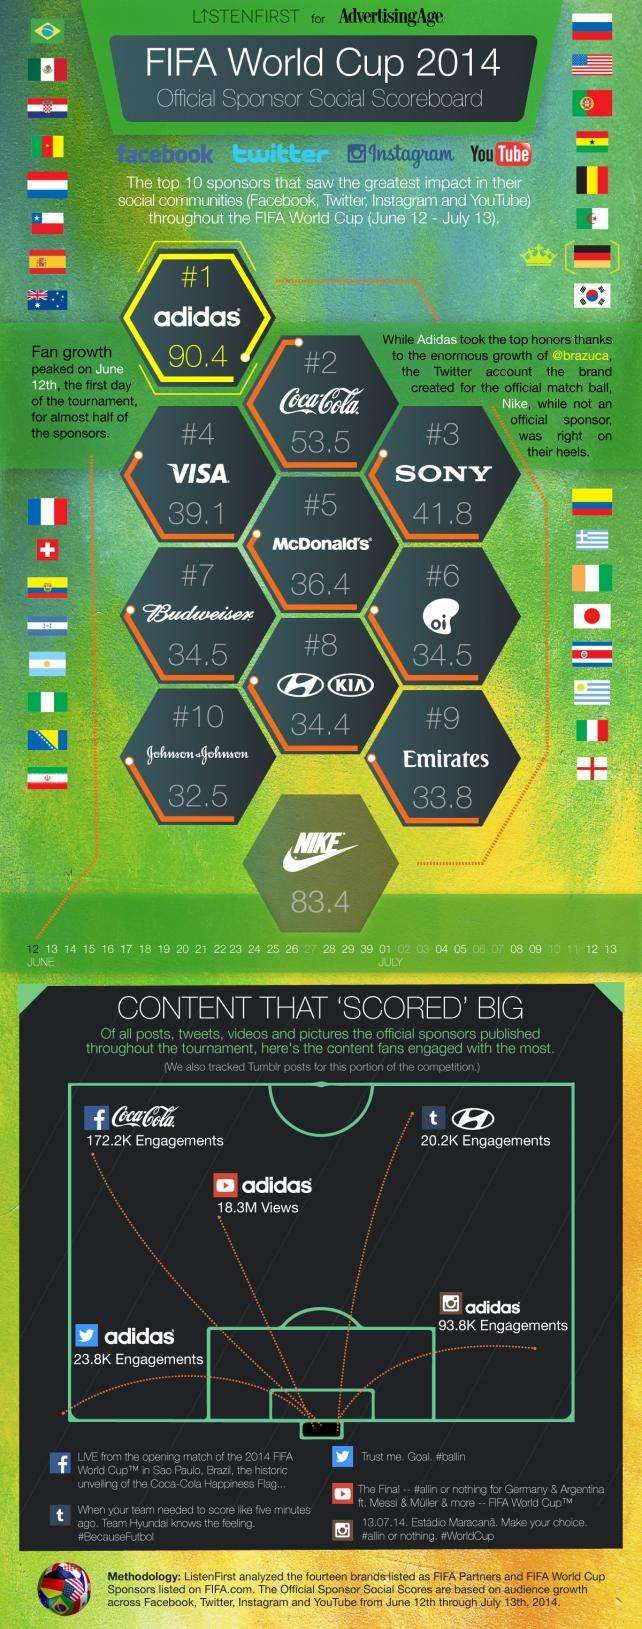 The 10 World Cup Sponsors That Grew The Most In Followers Fans And Subscribers Social Media Infographic World Cup Infographic Marketing